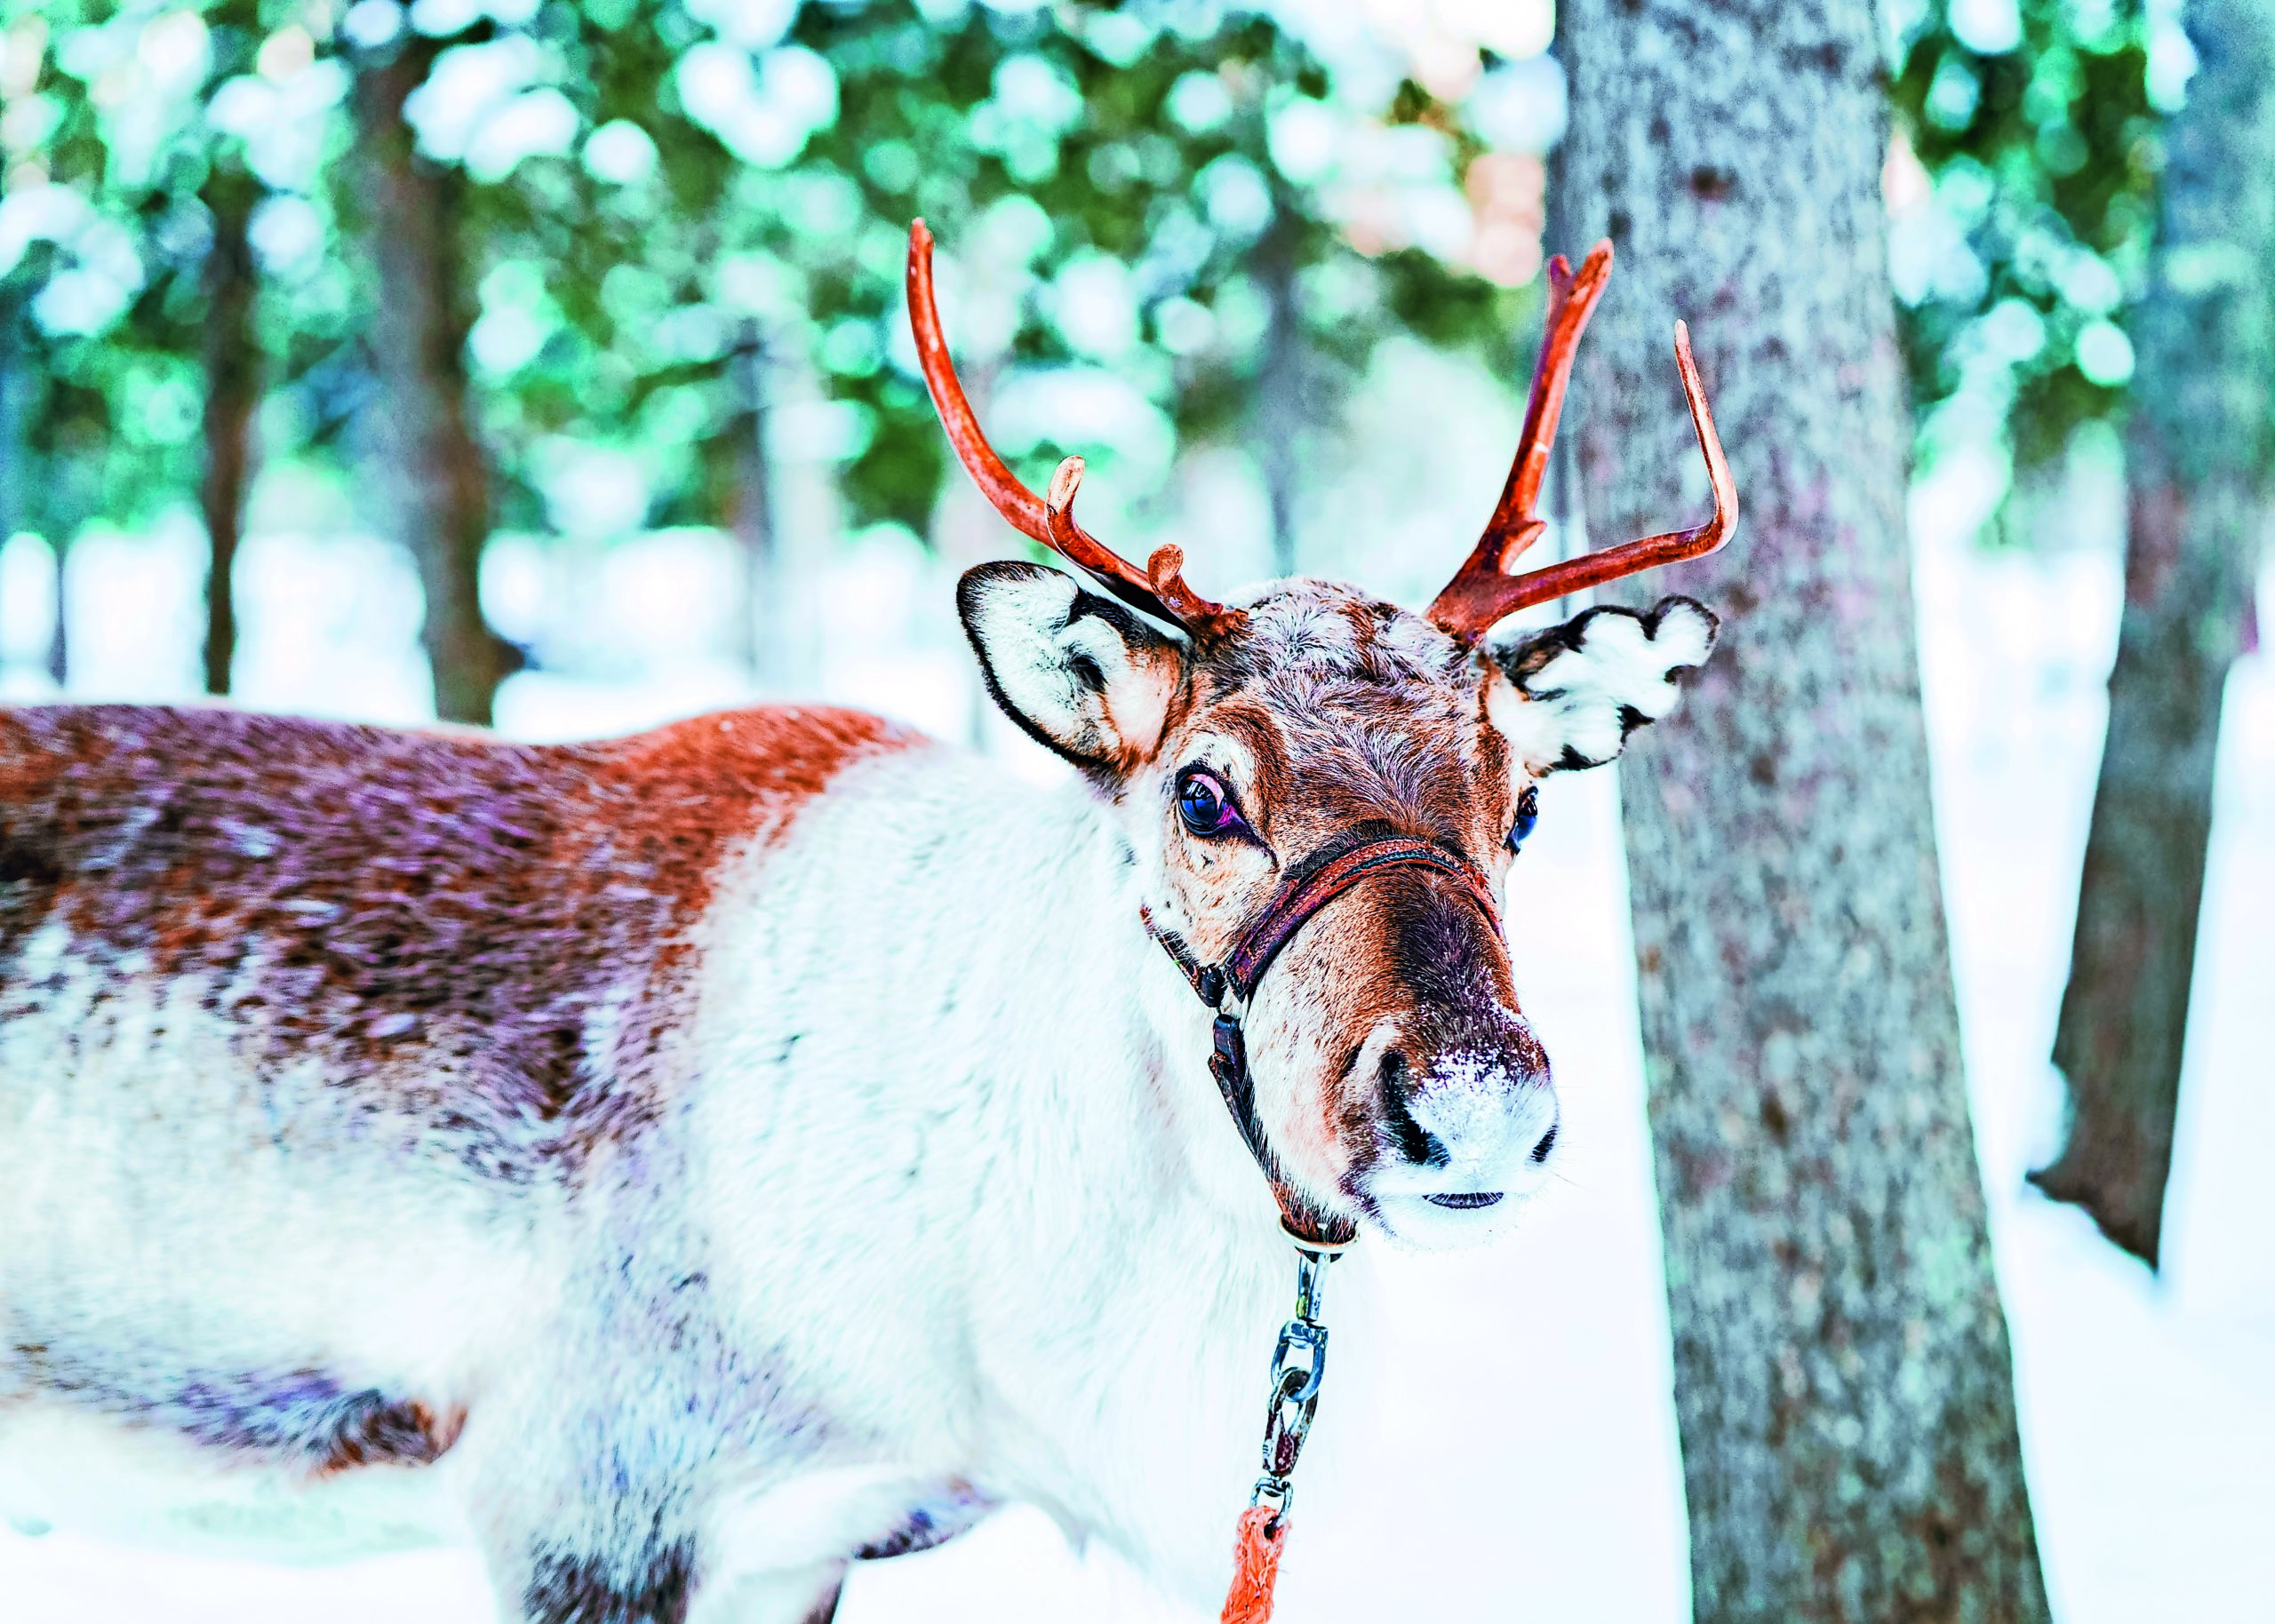 Brown Reindeer in Finland in Lapland at winter.